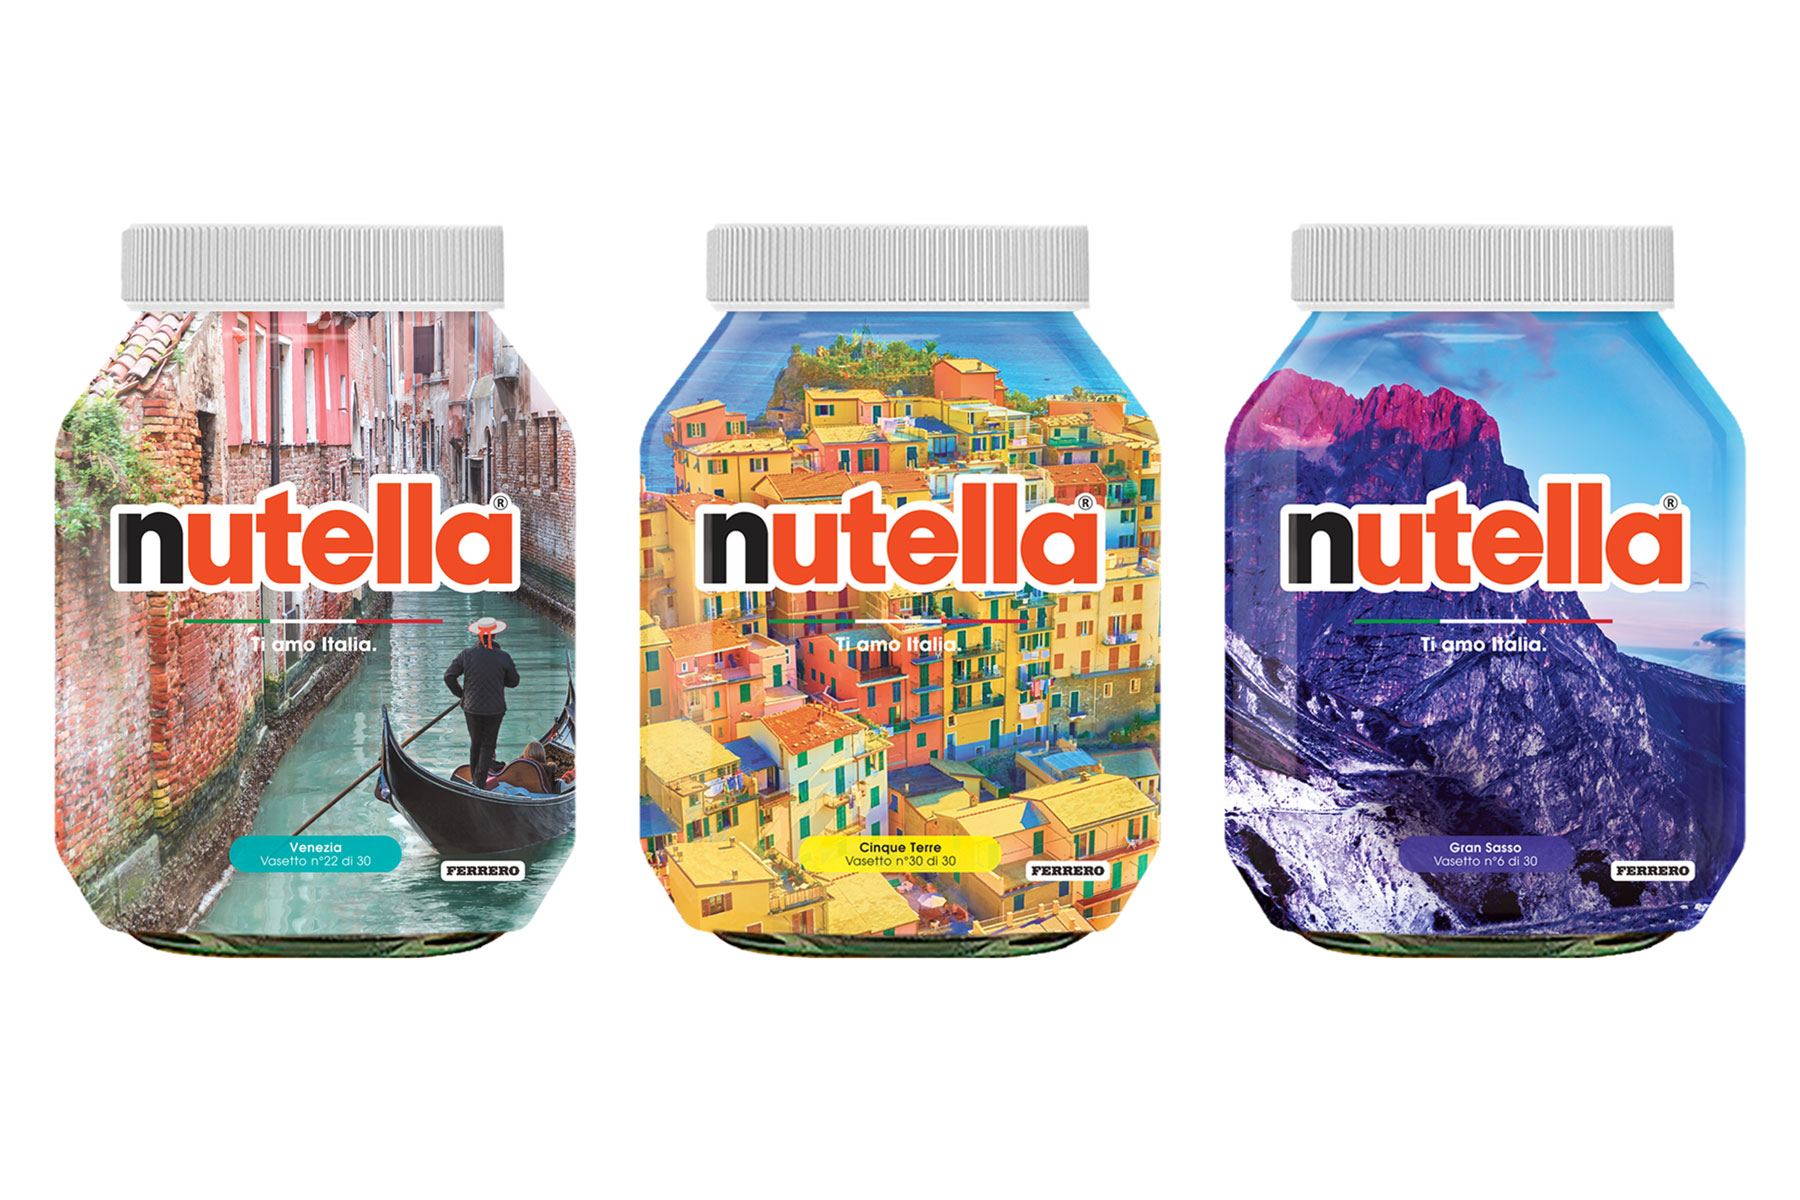 Nutella jars with landscape scenes of Italy superimposed on top